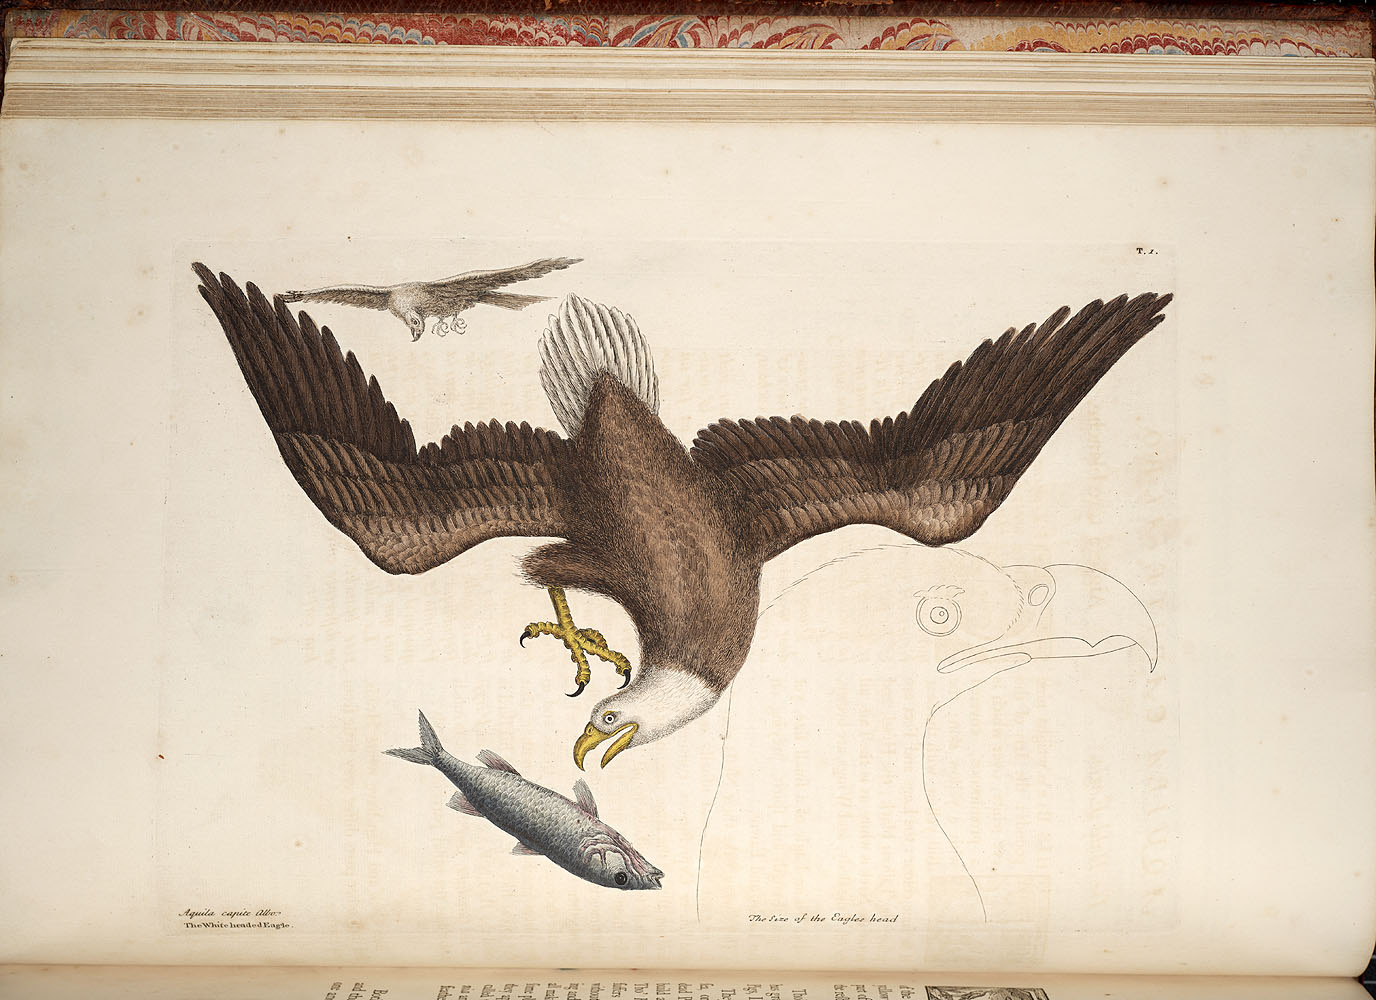 The White headed Eagle,  Image number:SIL7-051-029